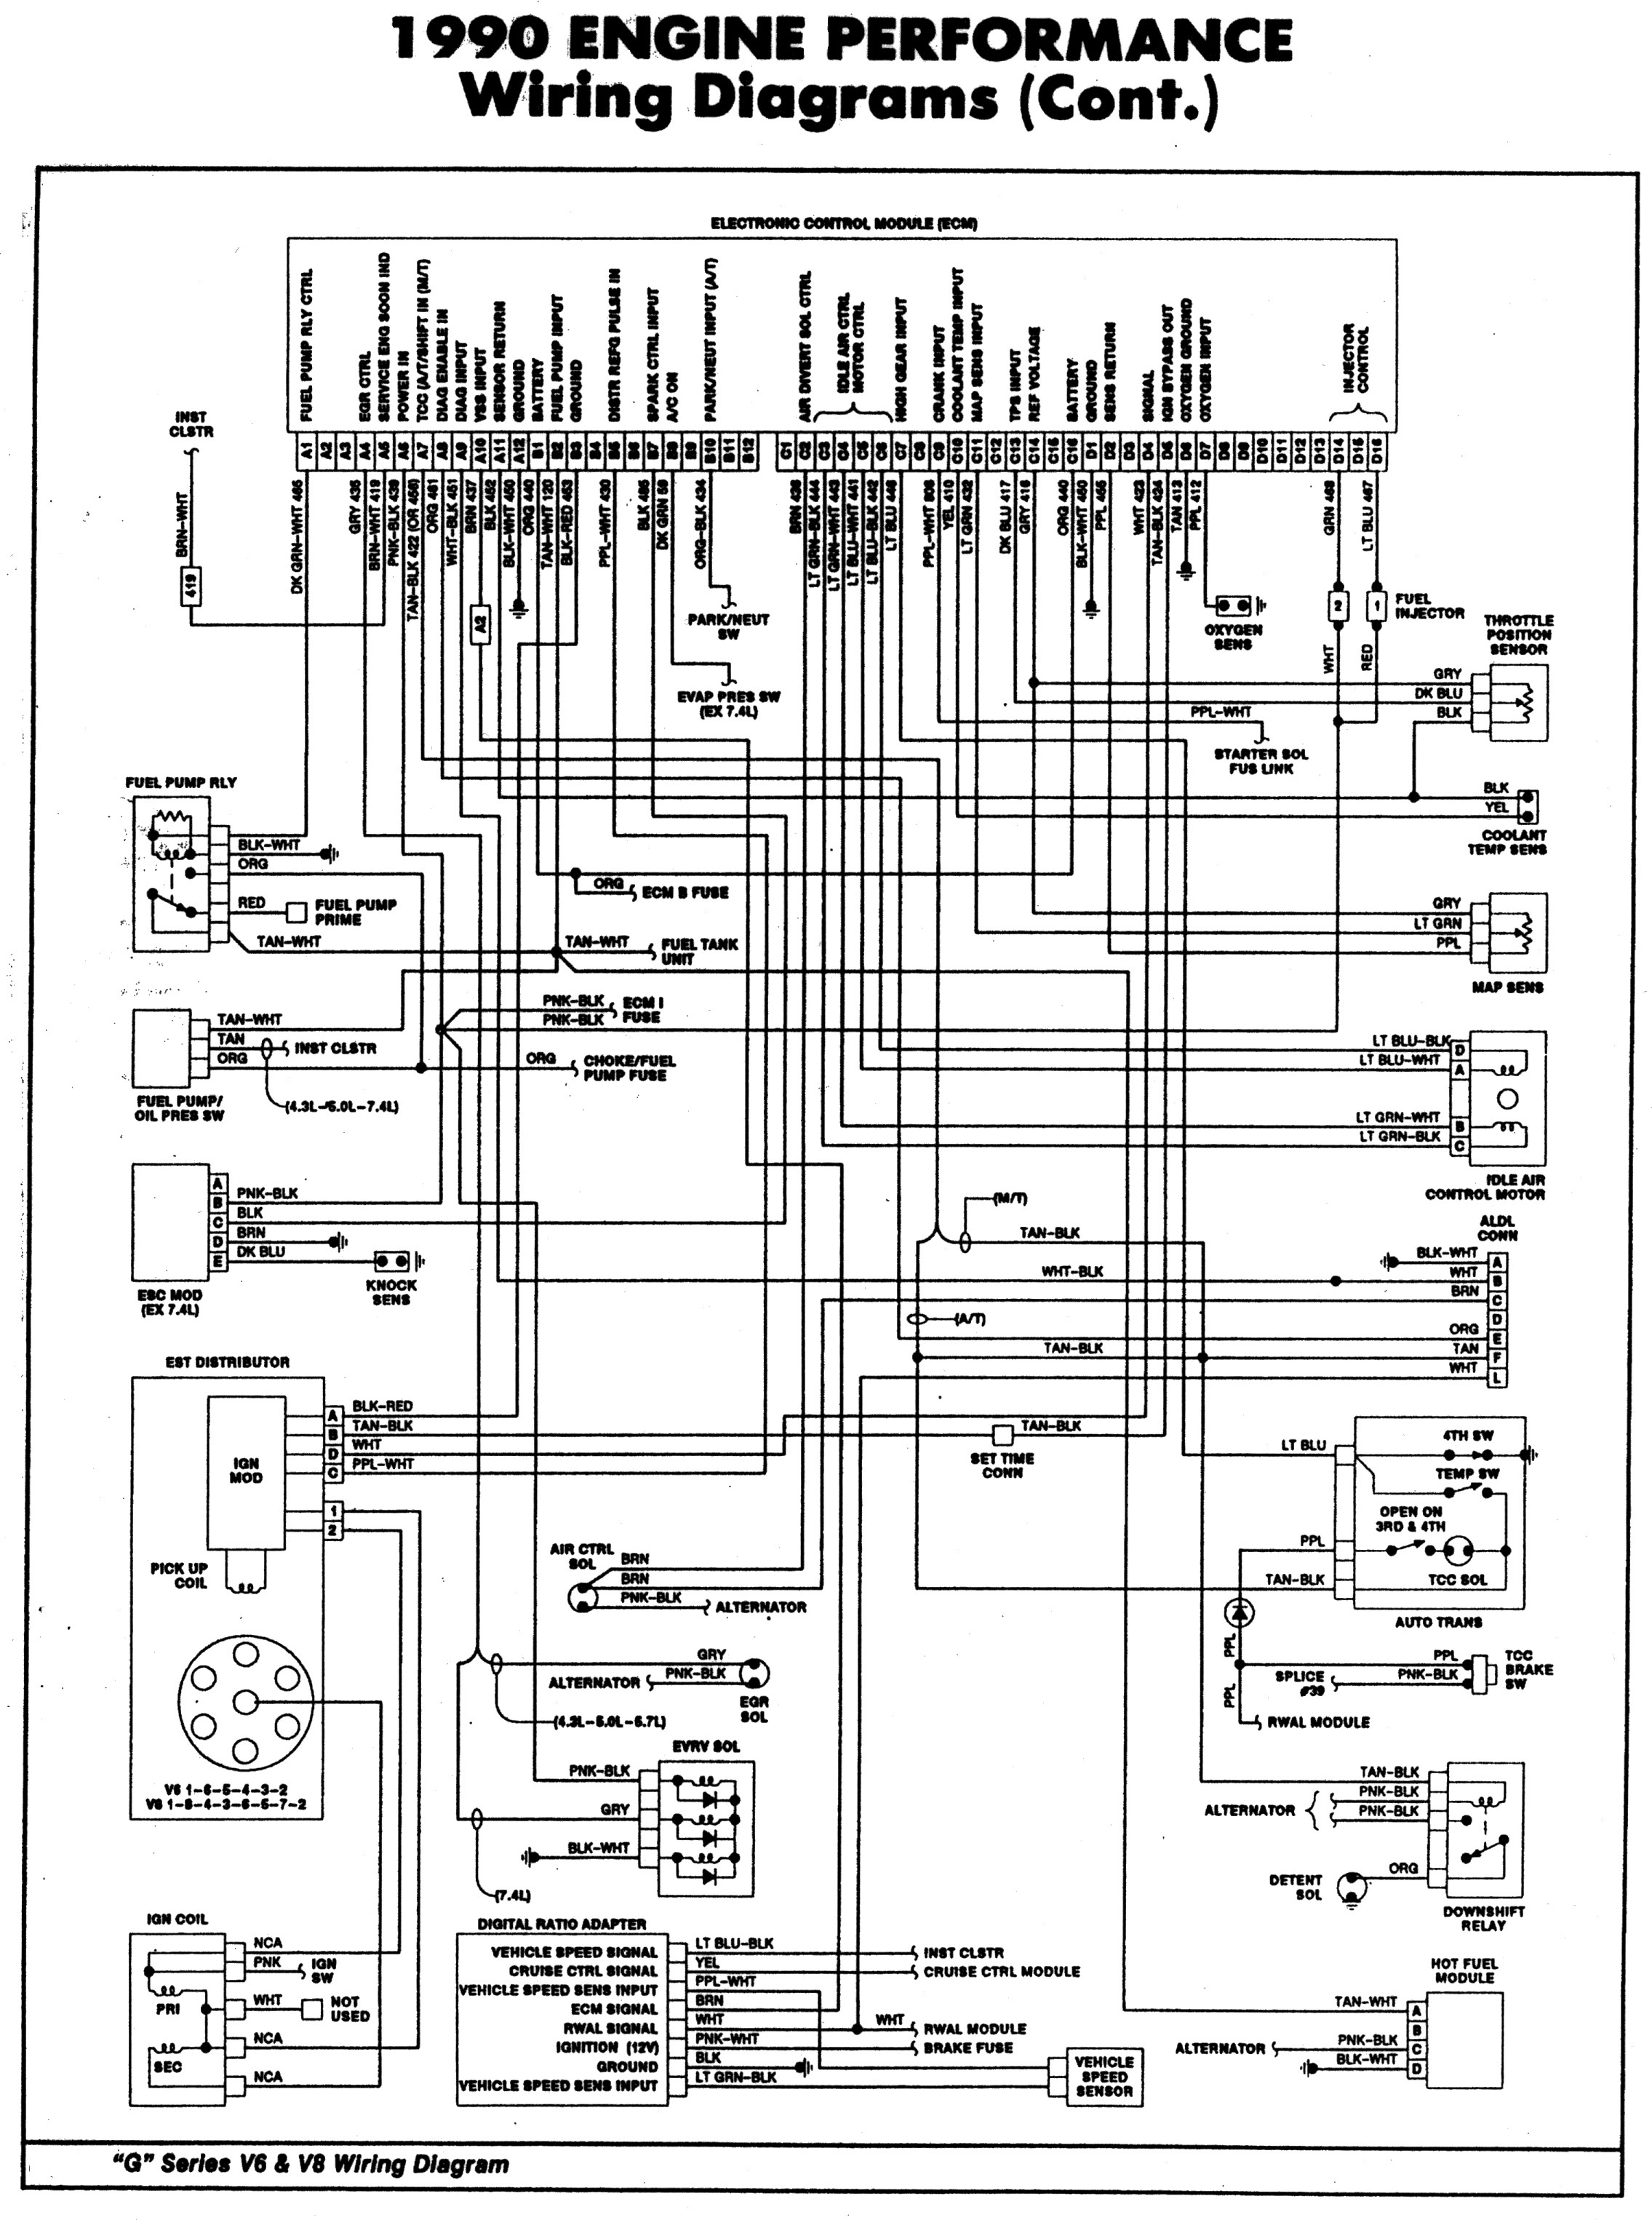 medium resolution of 1990 chevy rv wiring diagram wiring diagram home 1990 chevy rv wiring diagram